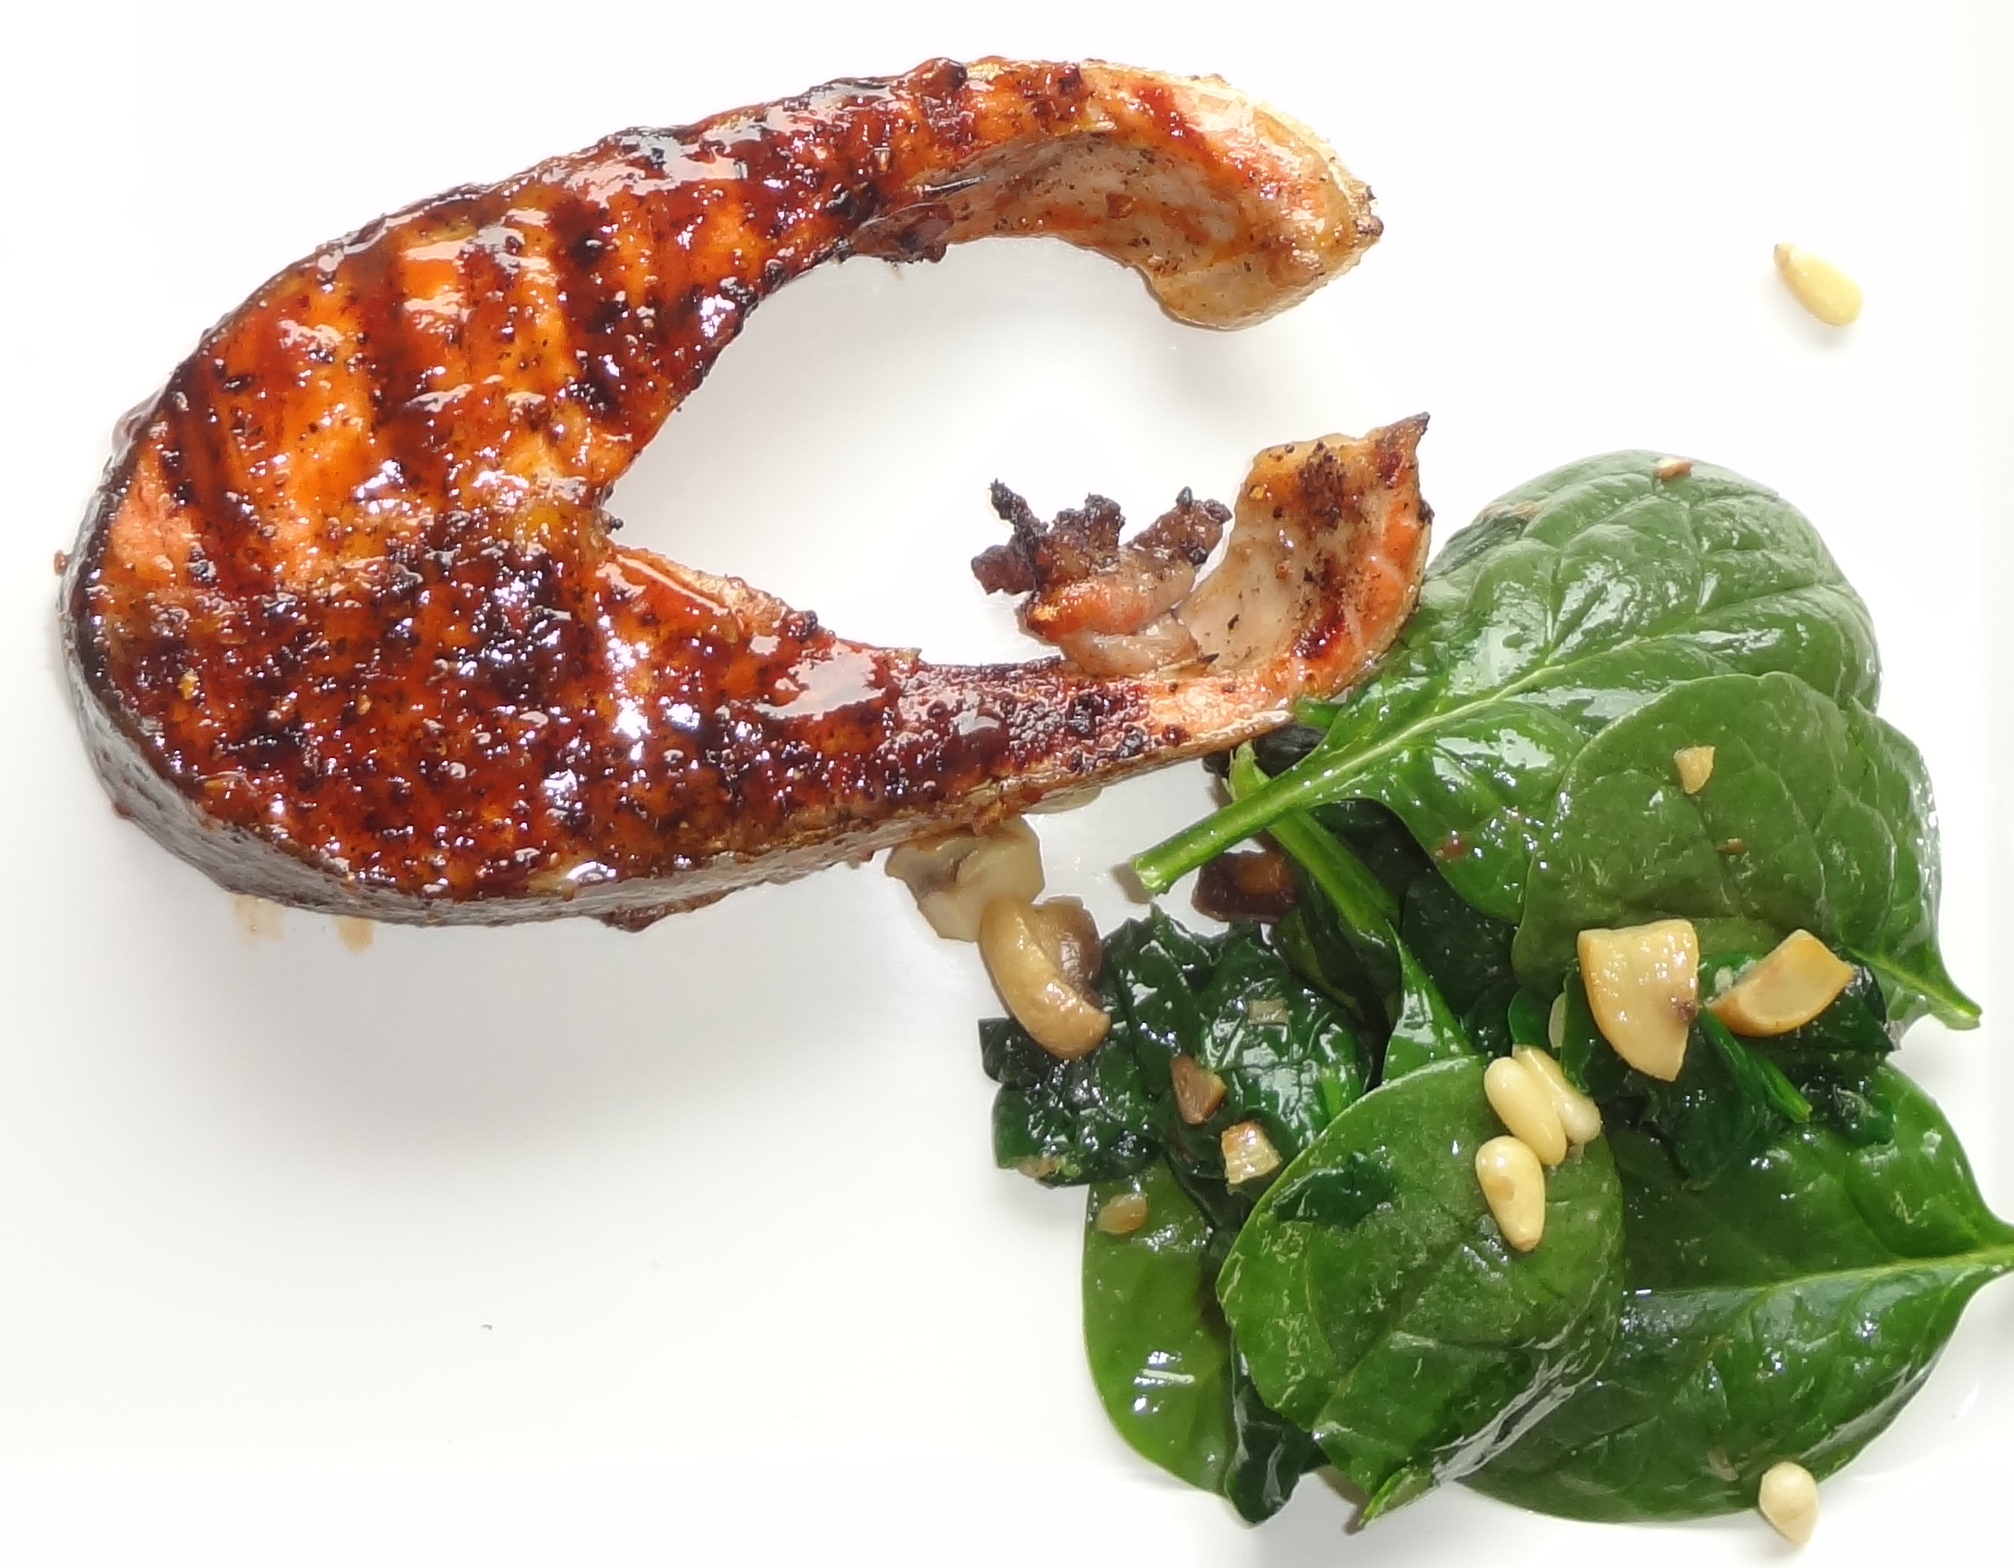 BBQ Salmon & Hot Spinach Salad